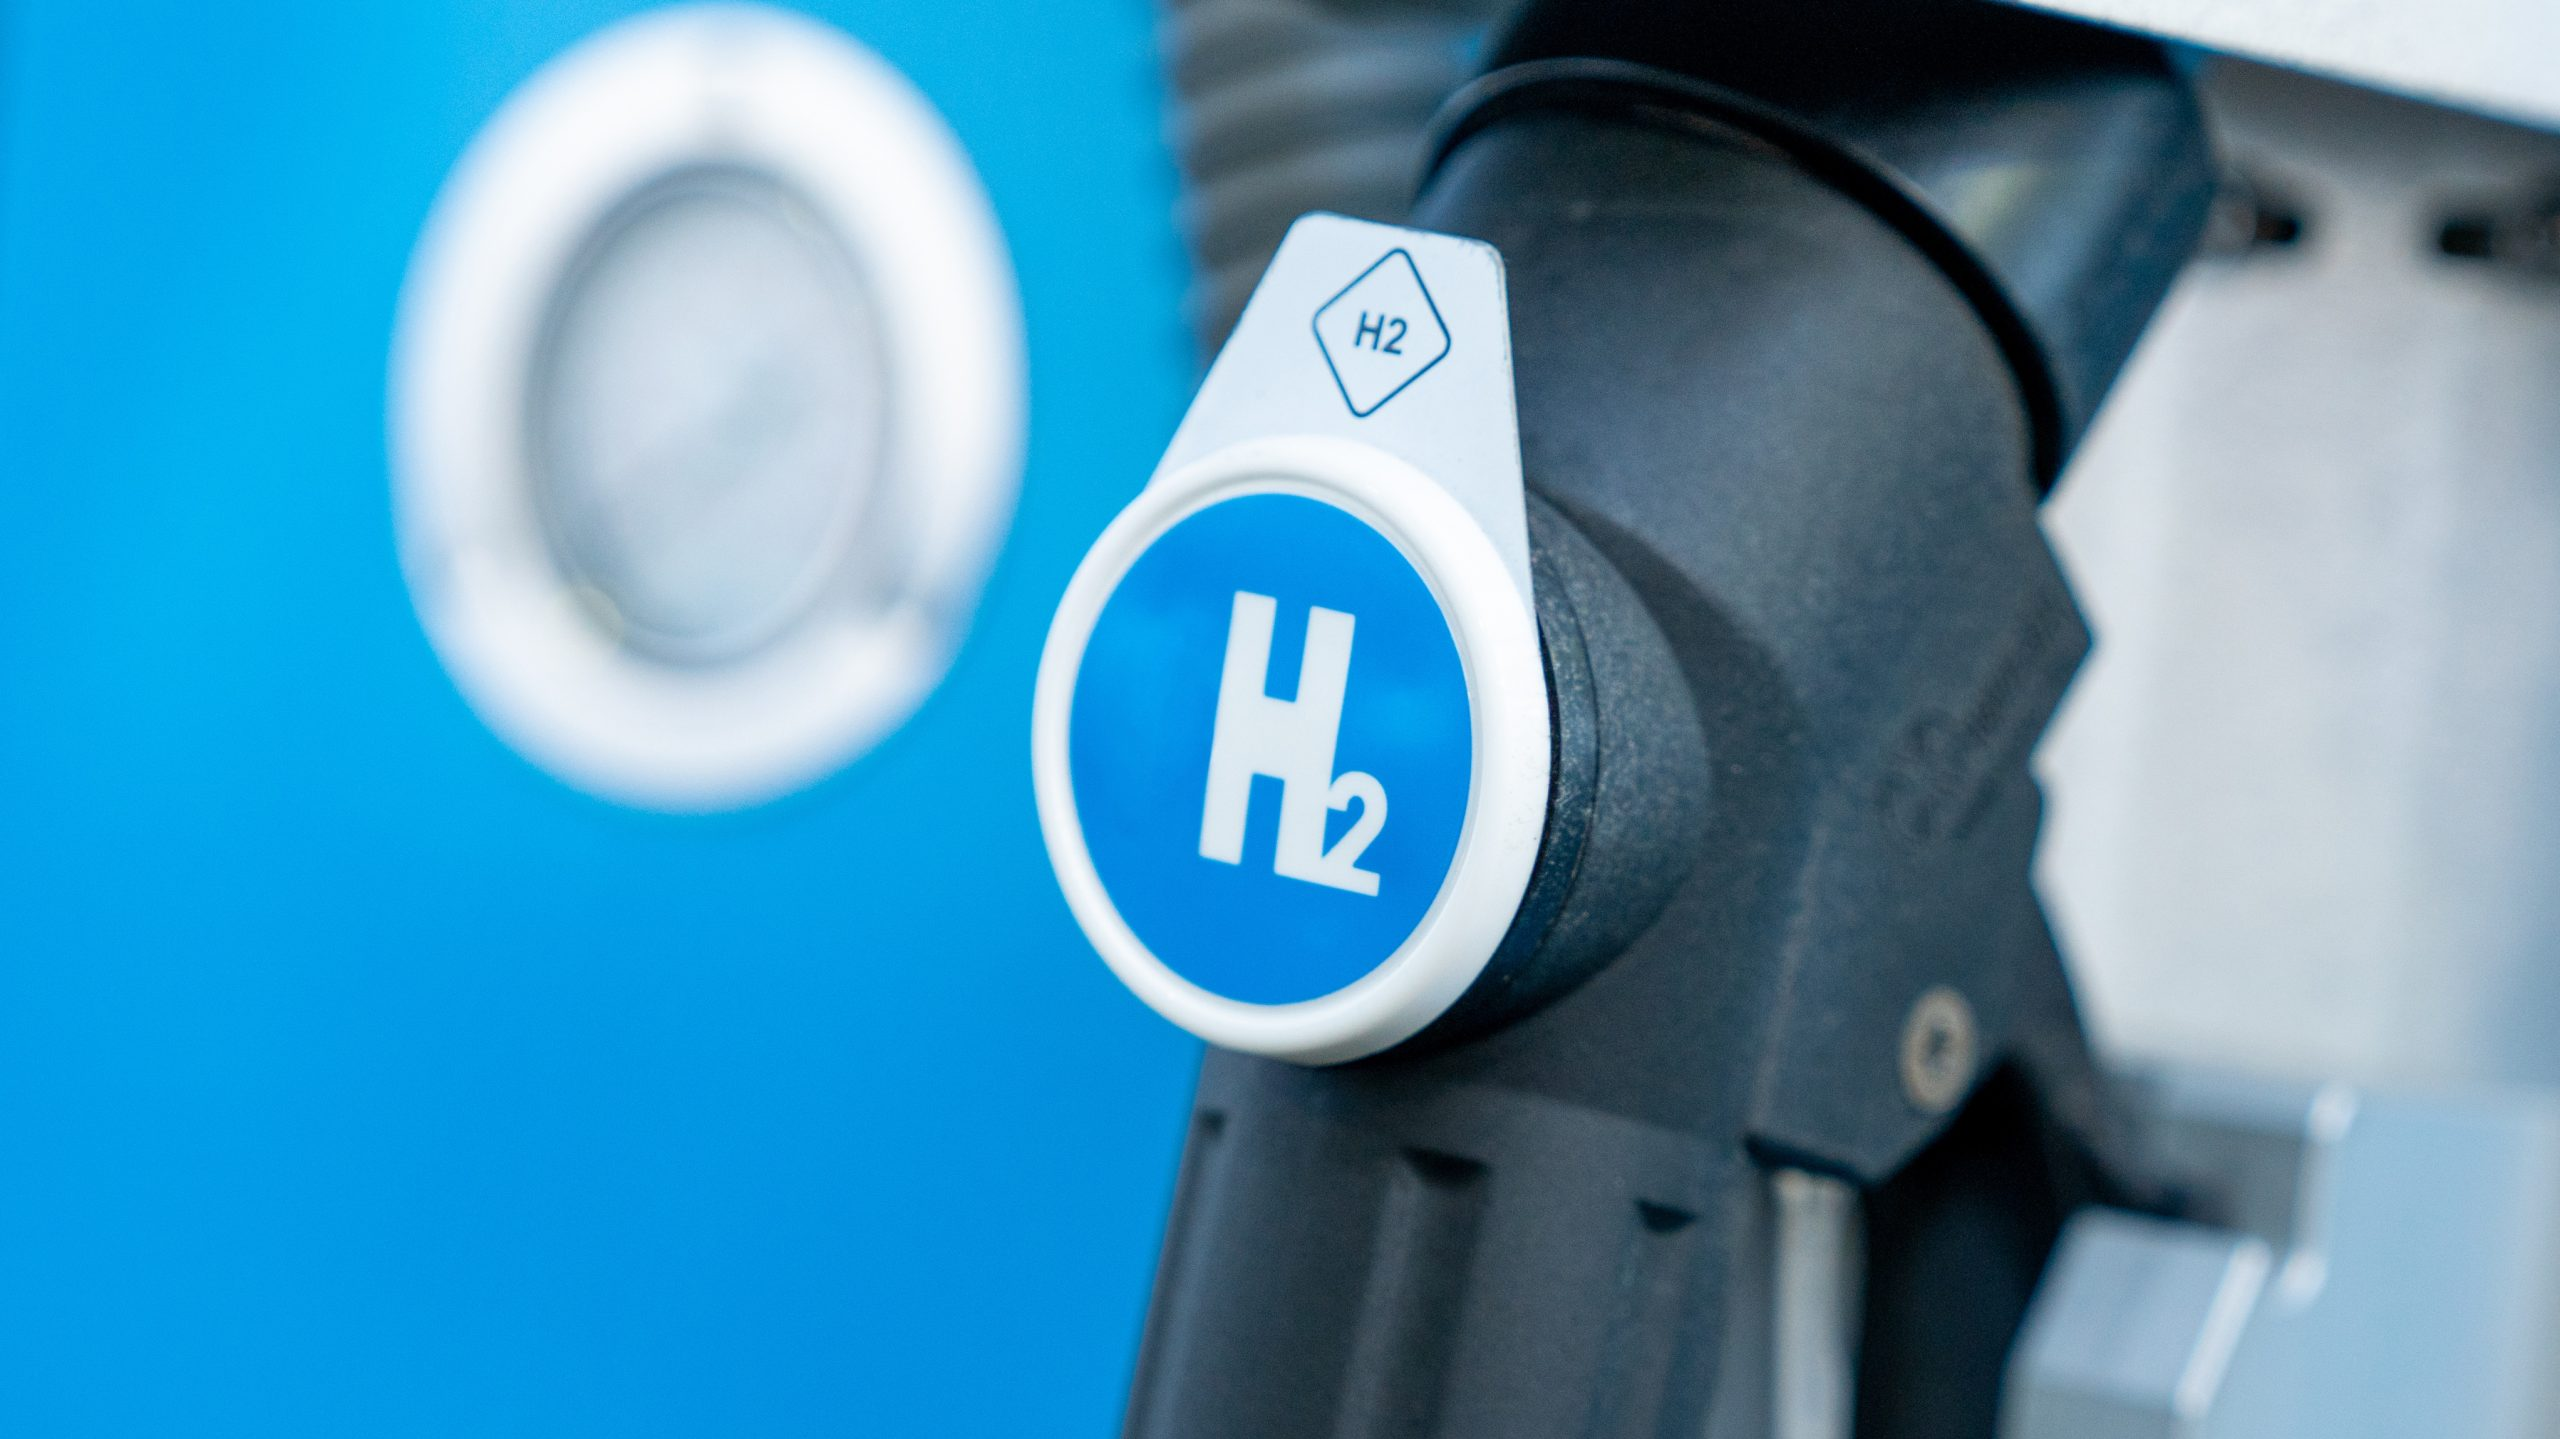 Using hydrogen fuel risks locking in reliance on fossil fuels, researchers warn